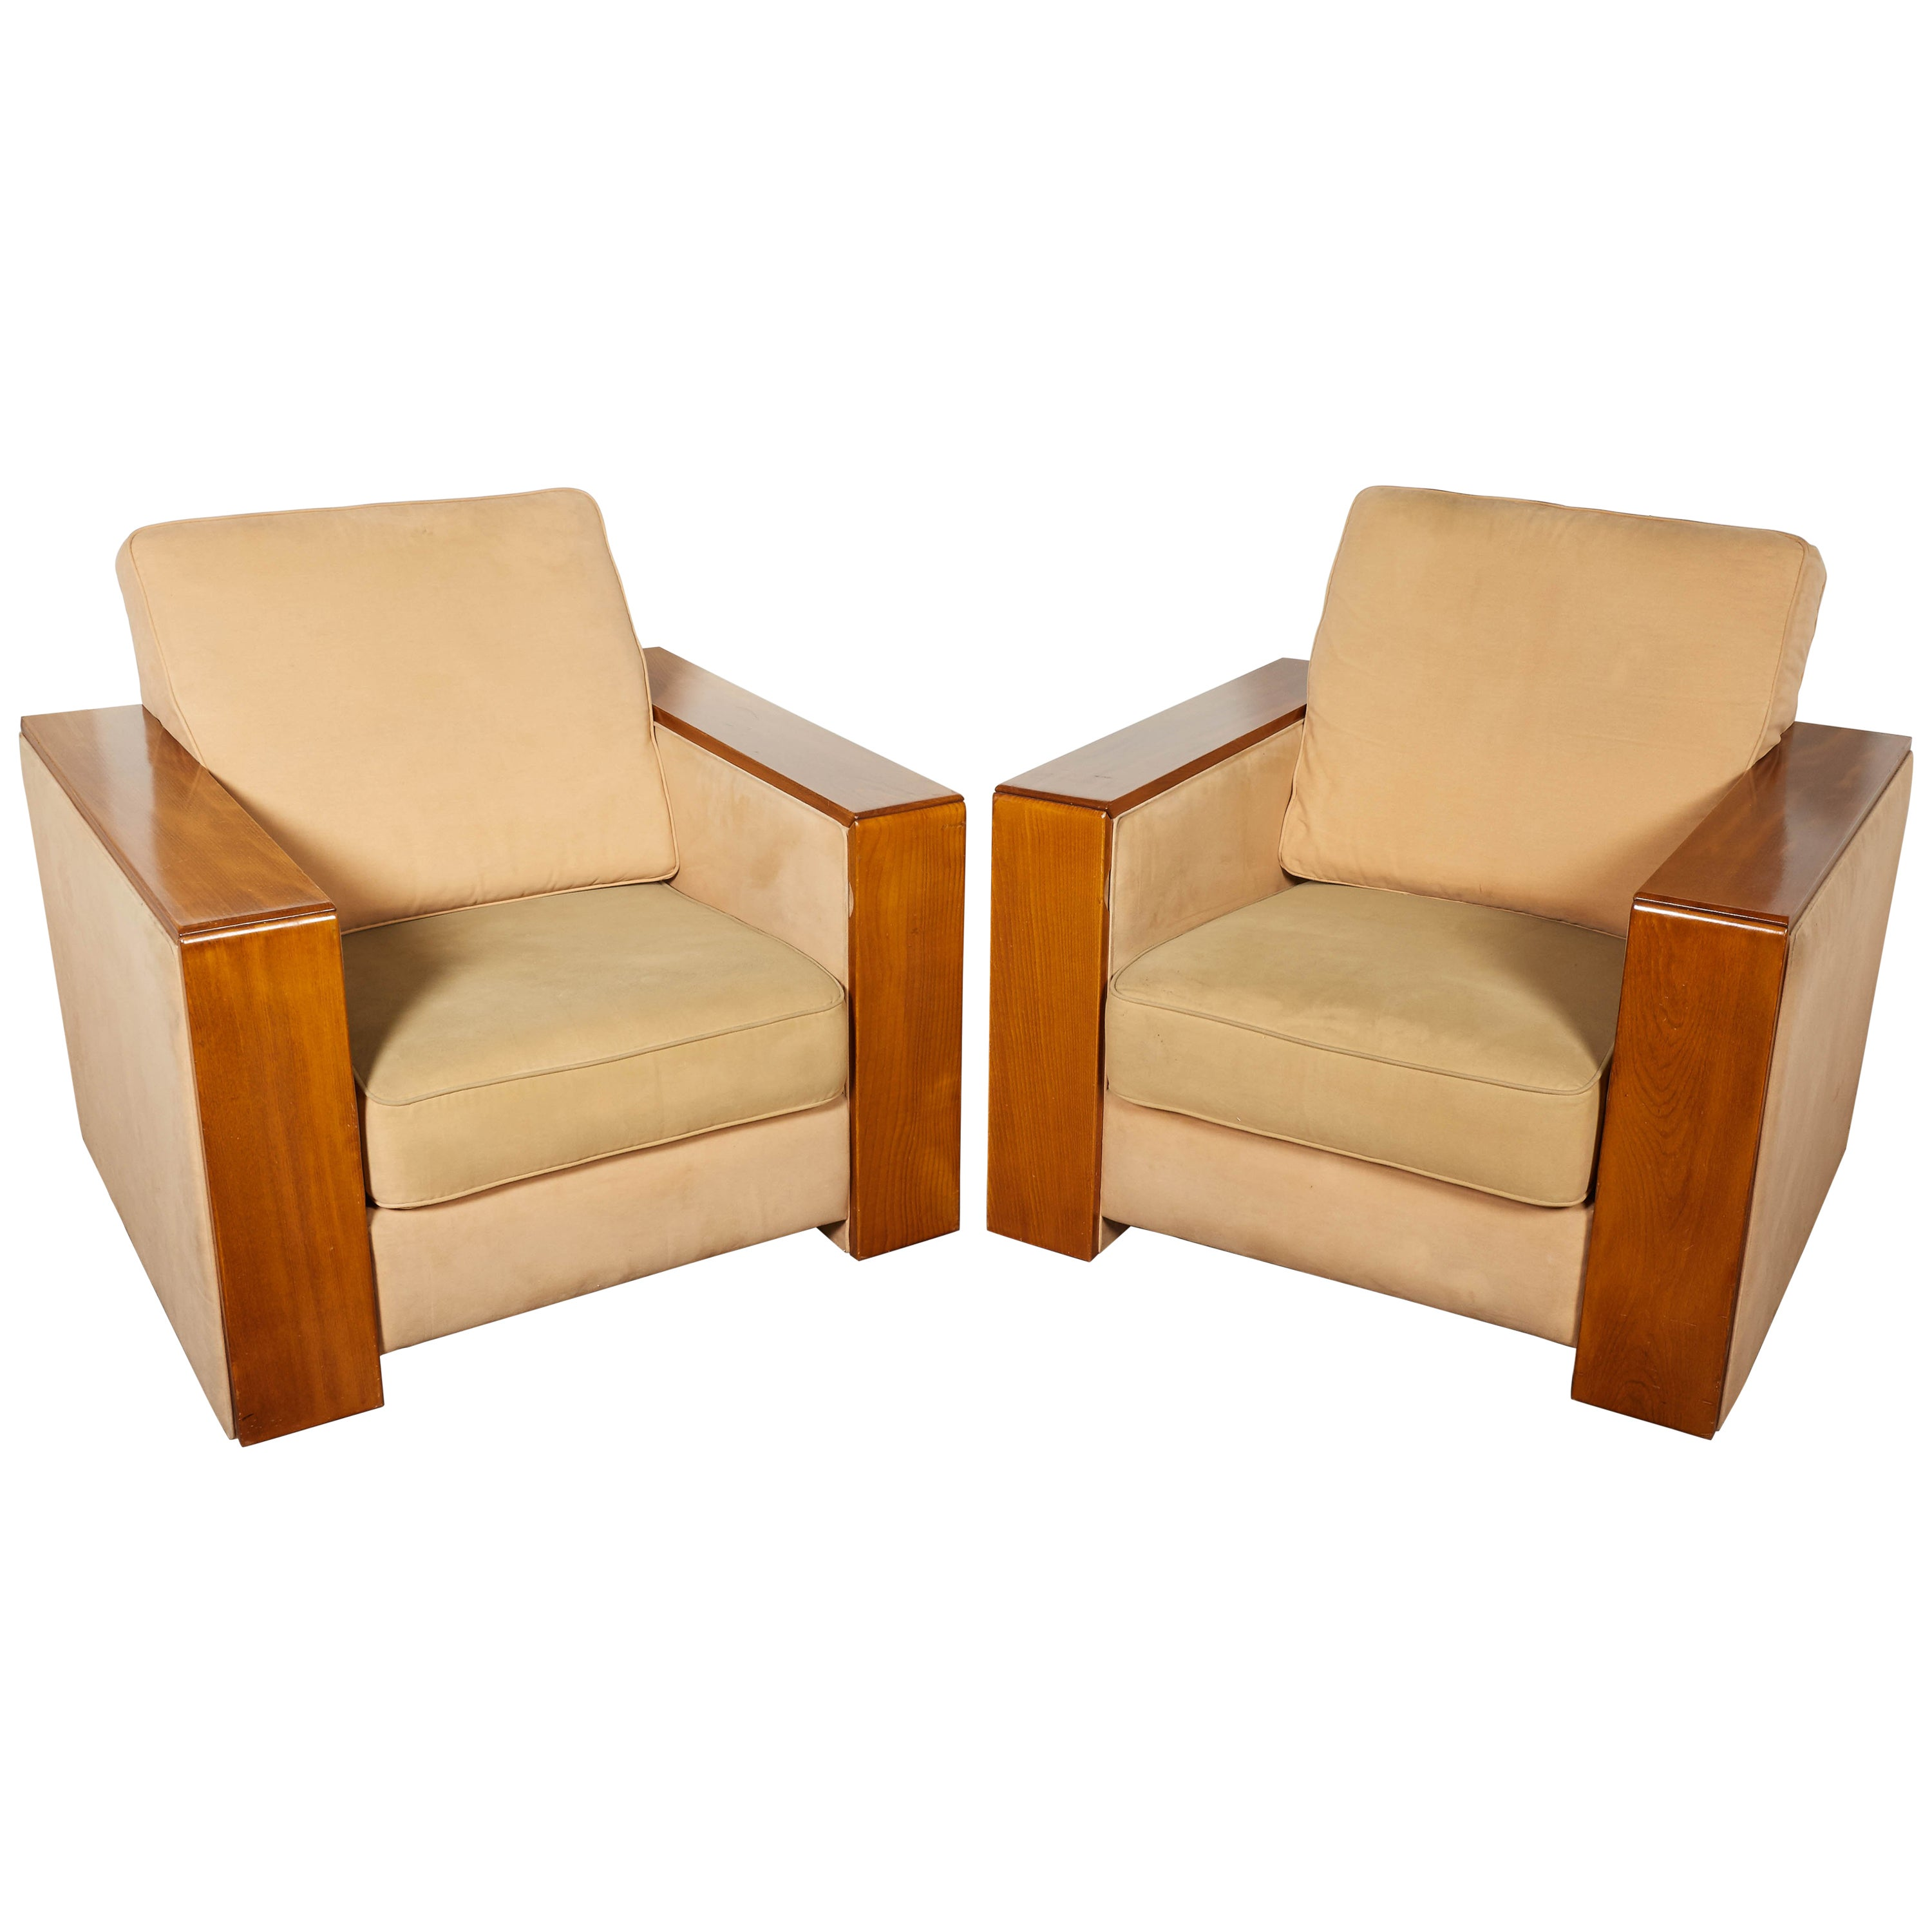 Picture of: Pair Of Large French Mid Century Modern Wide Arm Cubist Club Chairs At 1stdibs